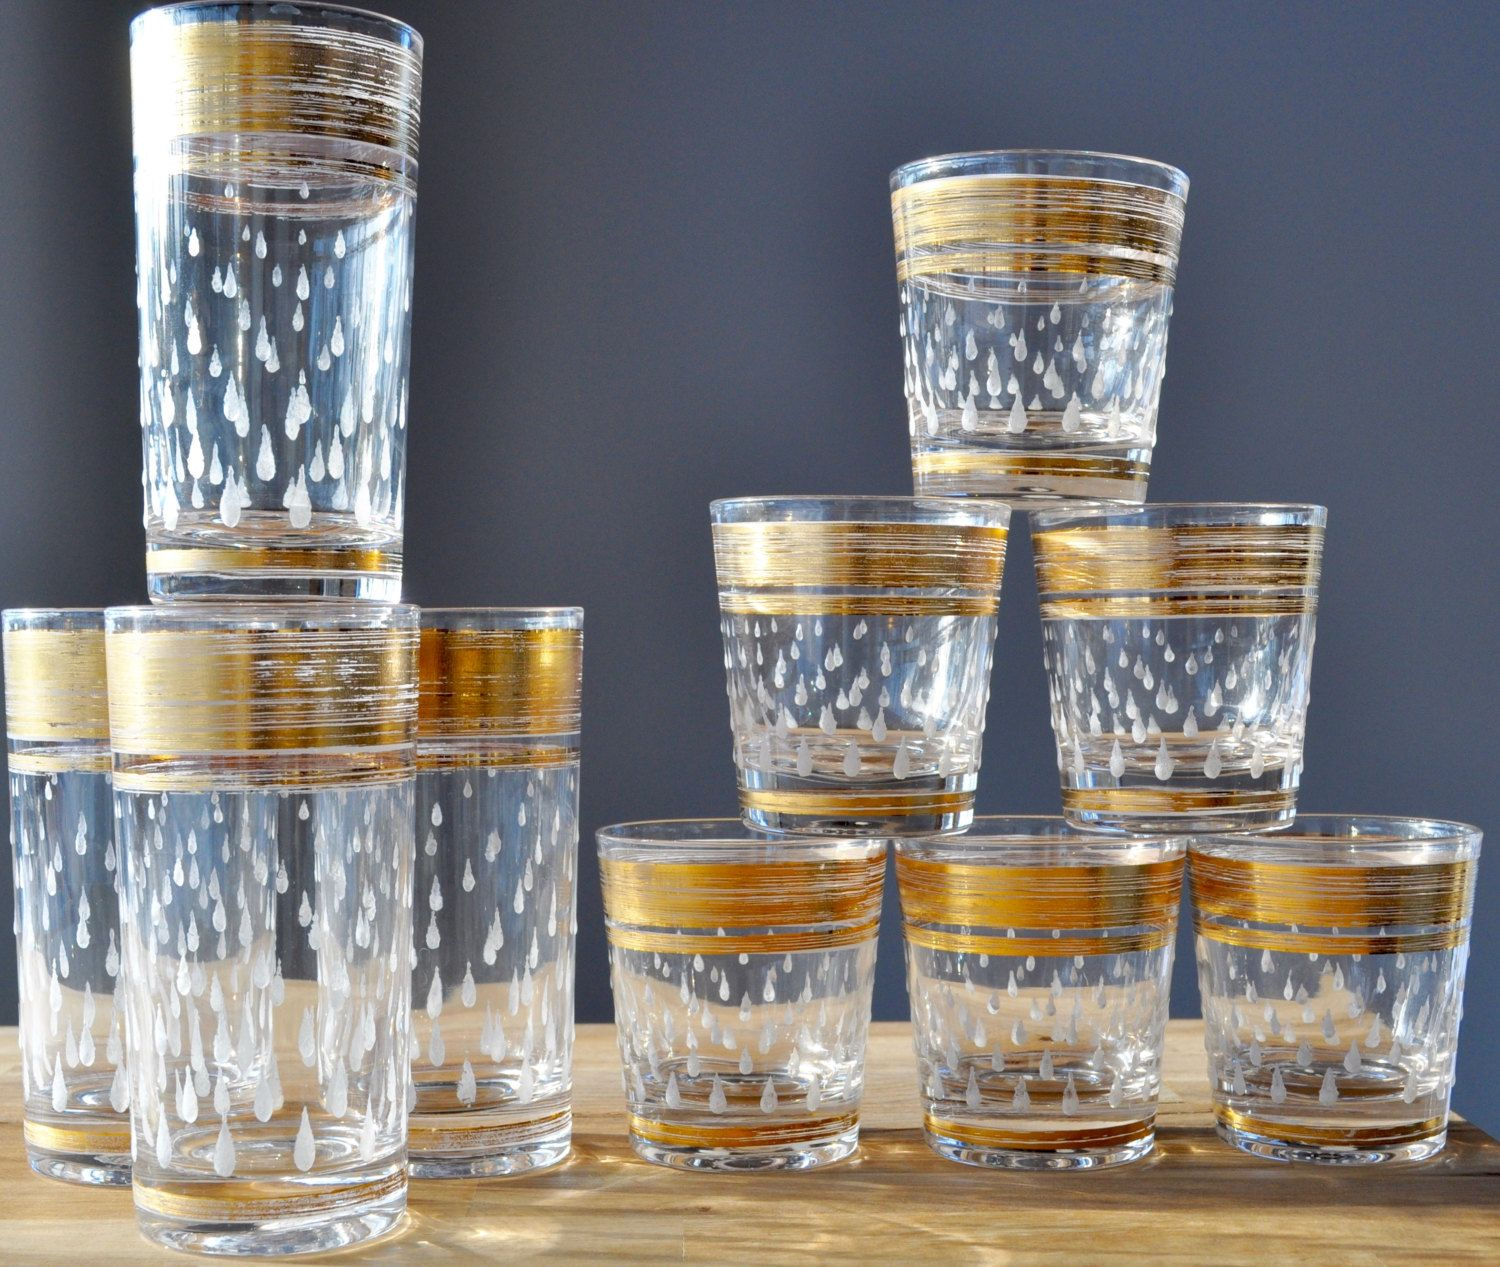 Beautiful Mid Century Modern Tumbler Set, Gold Guilded, Etched Glass, Vintage Barware,  Highball, Lowball, Raindrop, Mad Men, Drinking Glasses